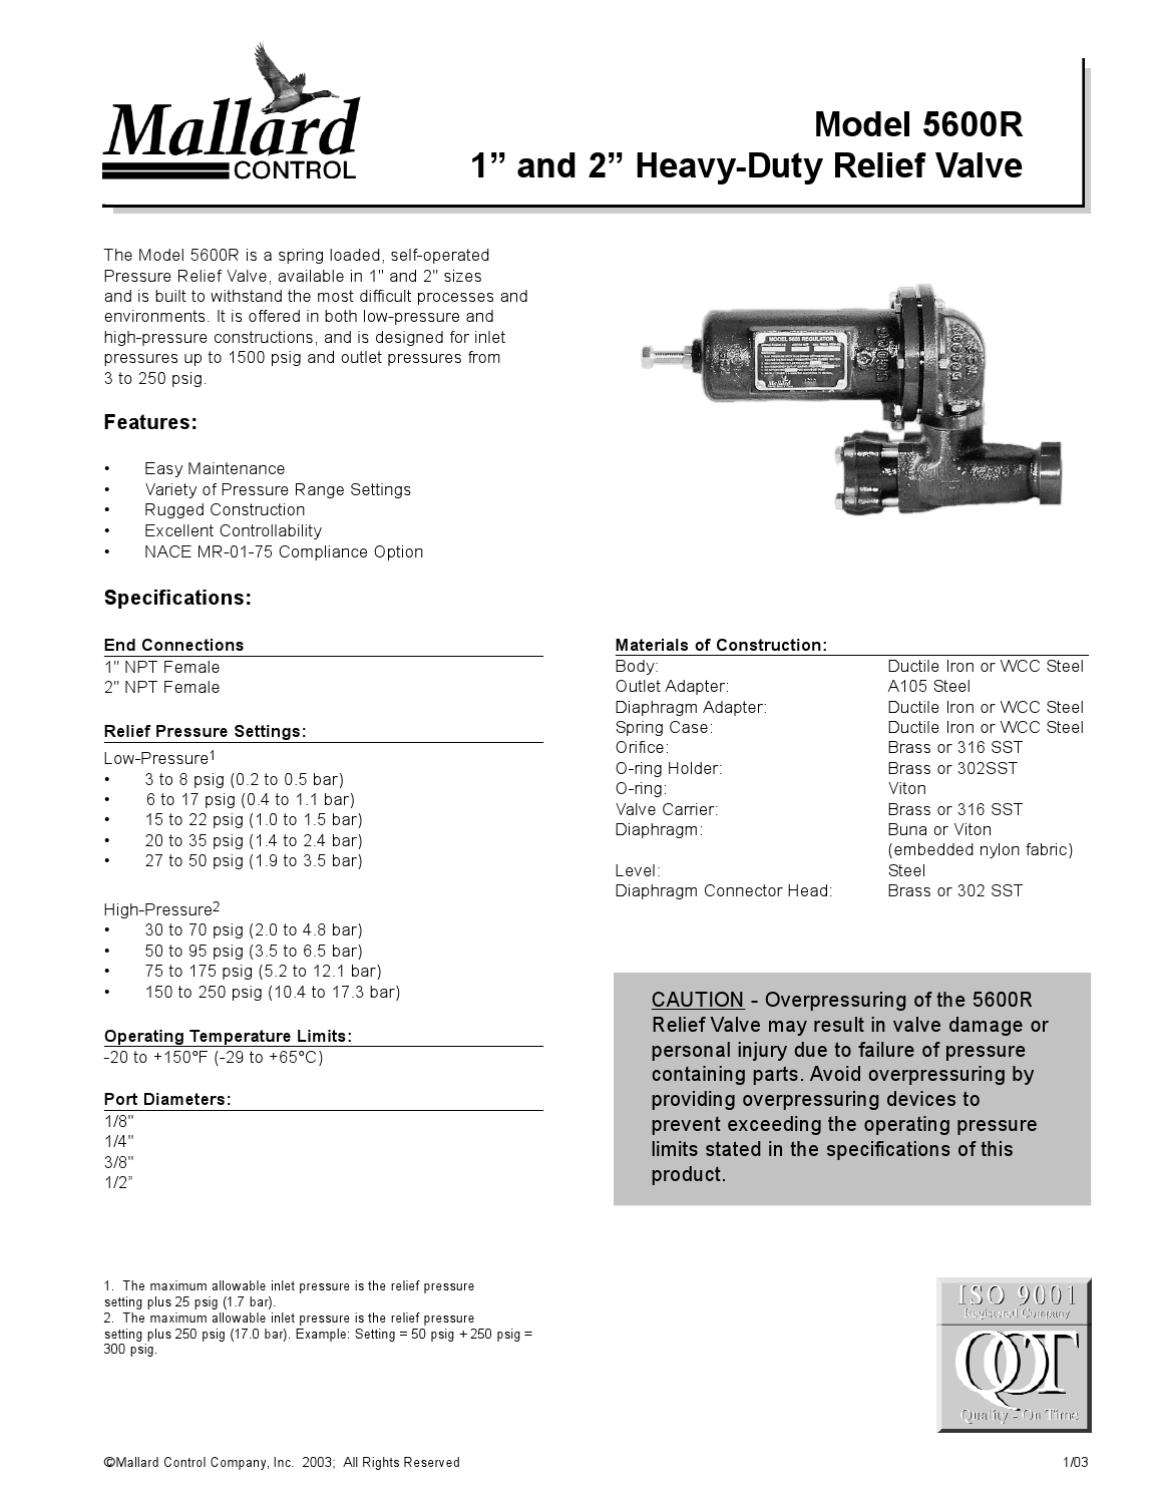 5600R Relief Regulator Bulletin By RMC Process Controls Filtration Inc